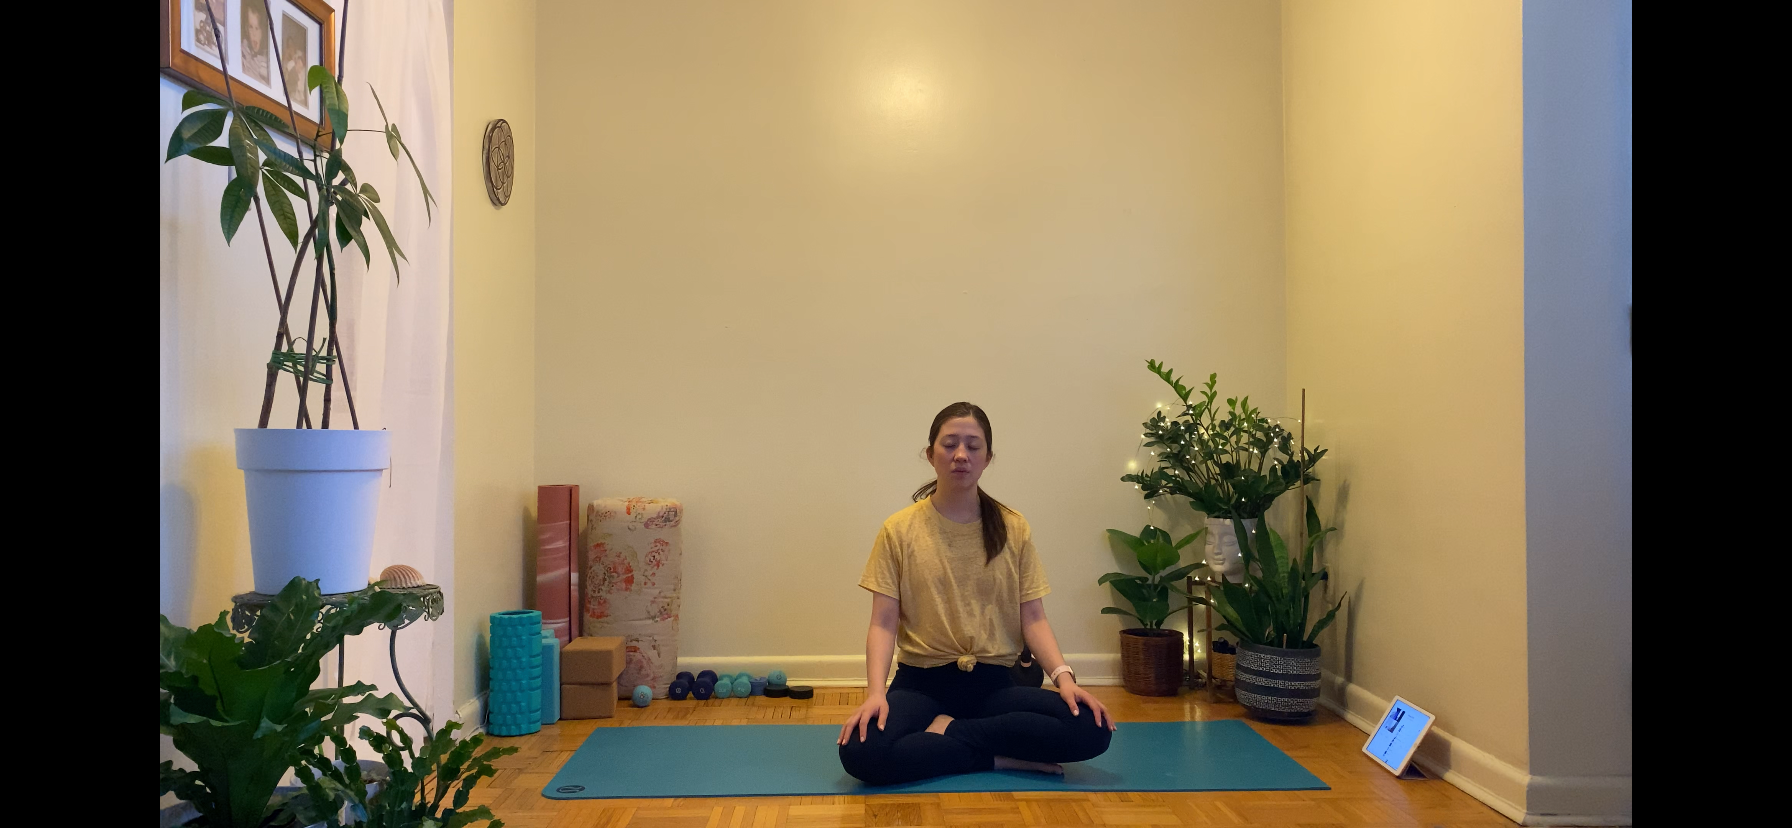 A Practice to Calm the Mind